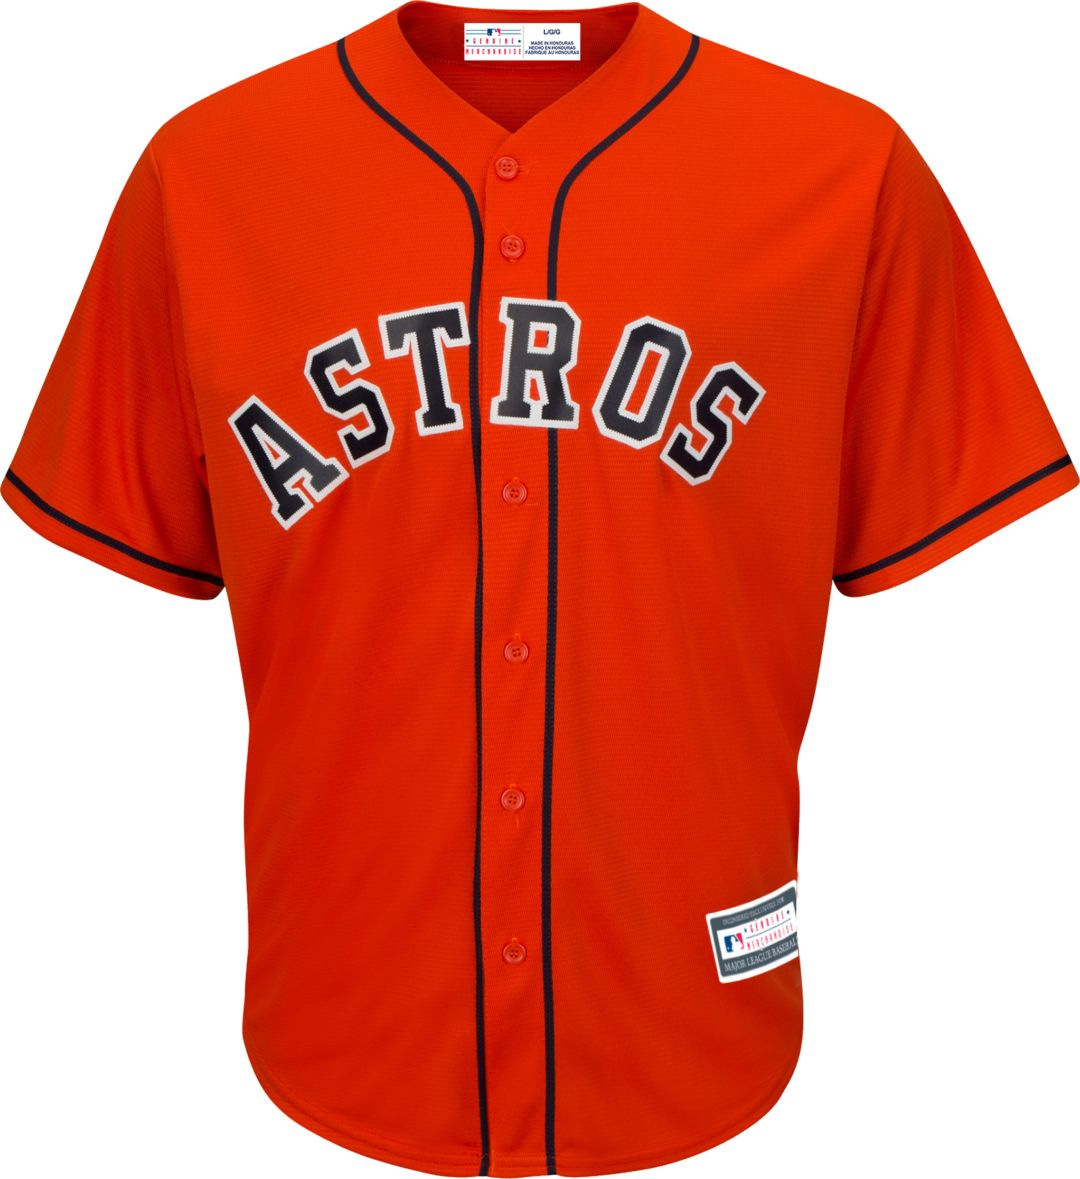 sale retailer 64dd0 42fd6 Youth Replica Houston Astros Jose Altuve #27 Alternate Orange Jersey